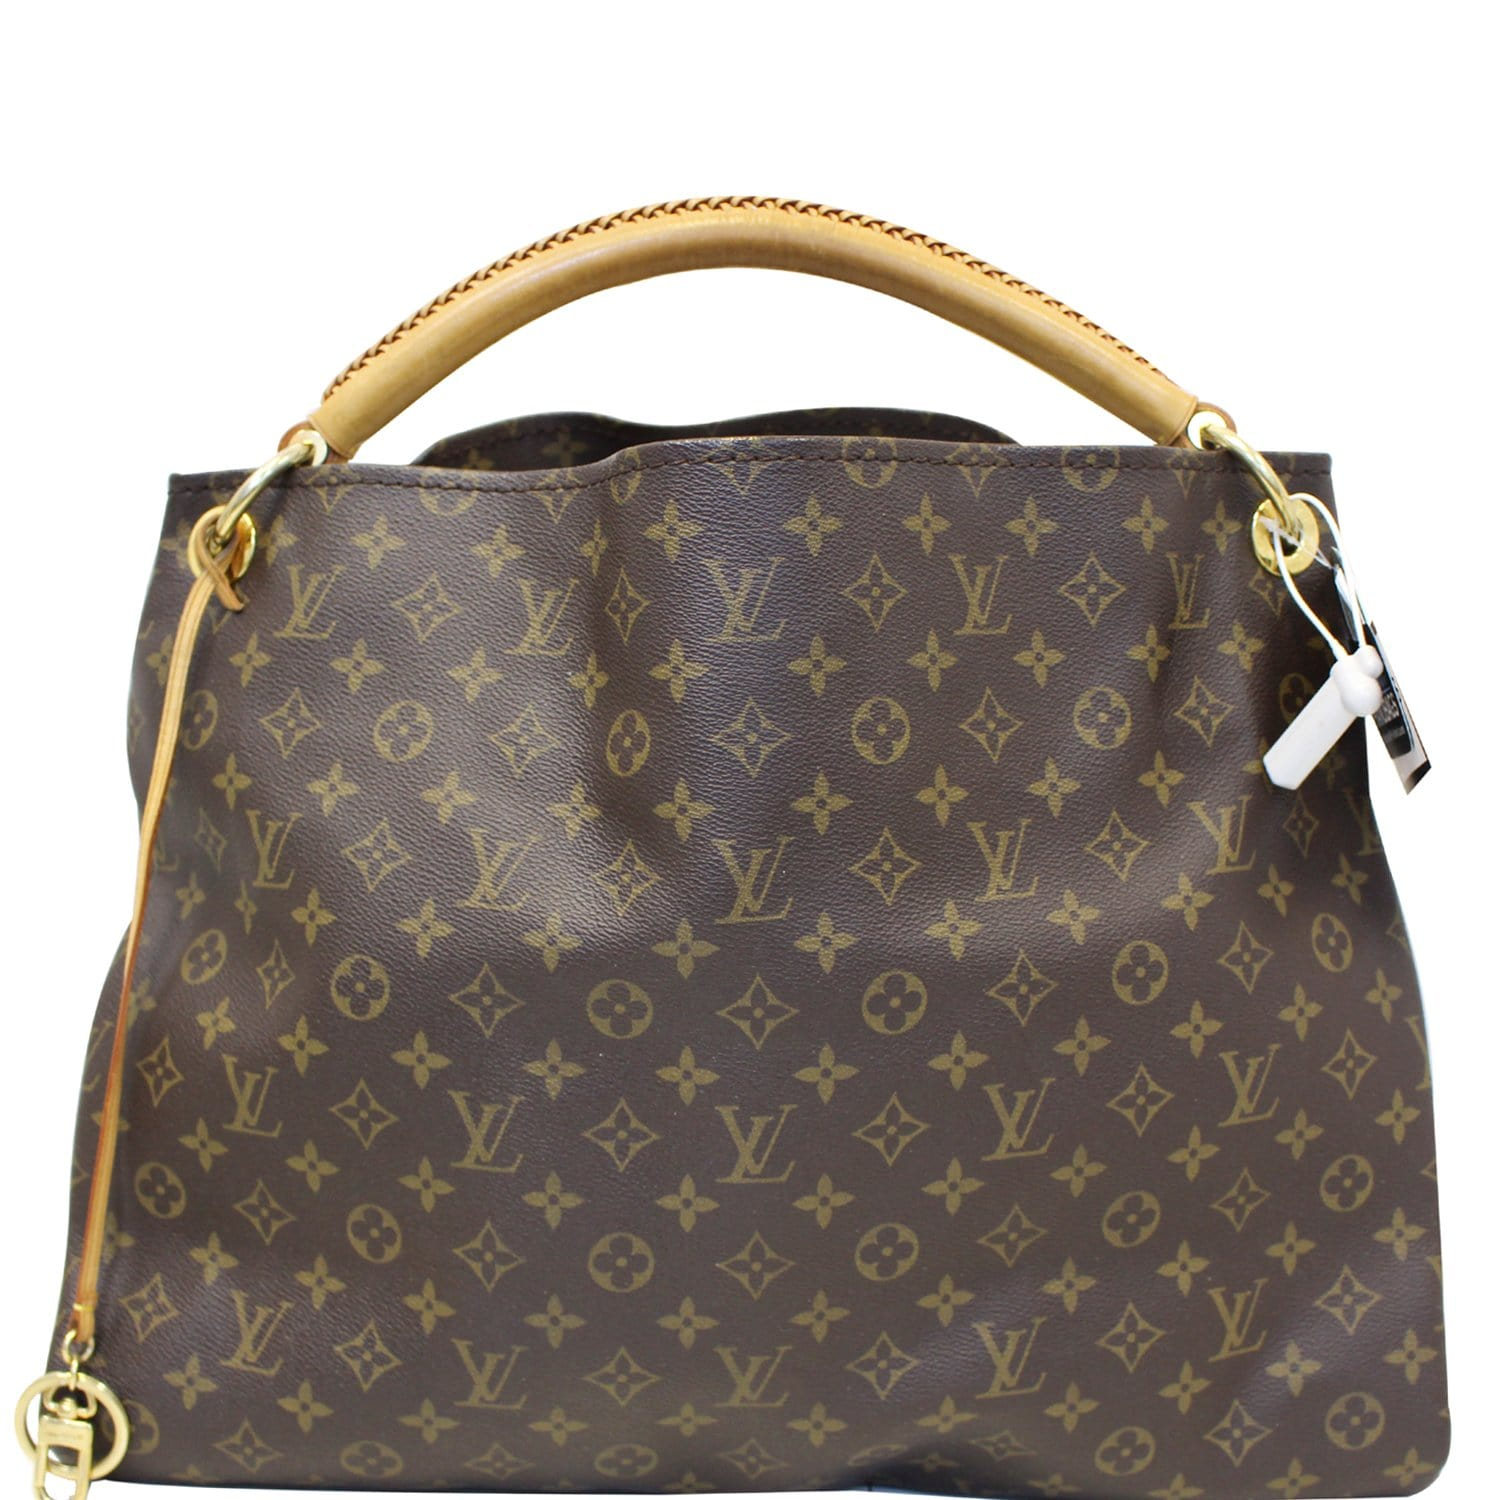 c289b0ebb13f LOUIS VUITTON Artsy GM Monogram Canvas Hobo Shoulder Bag-US